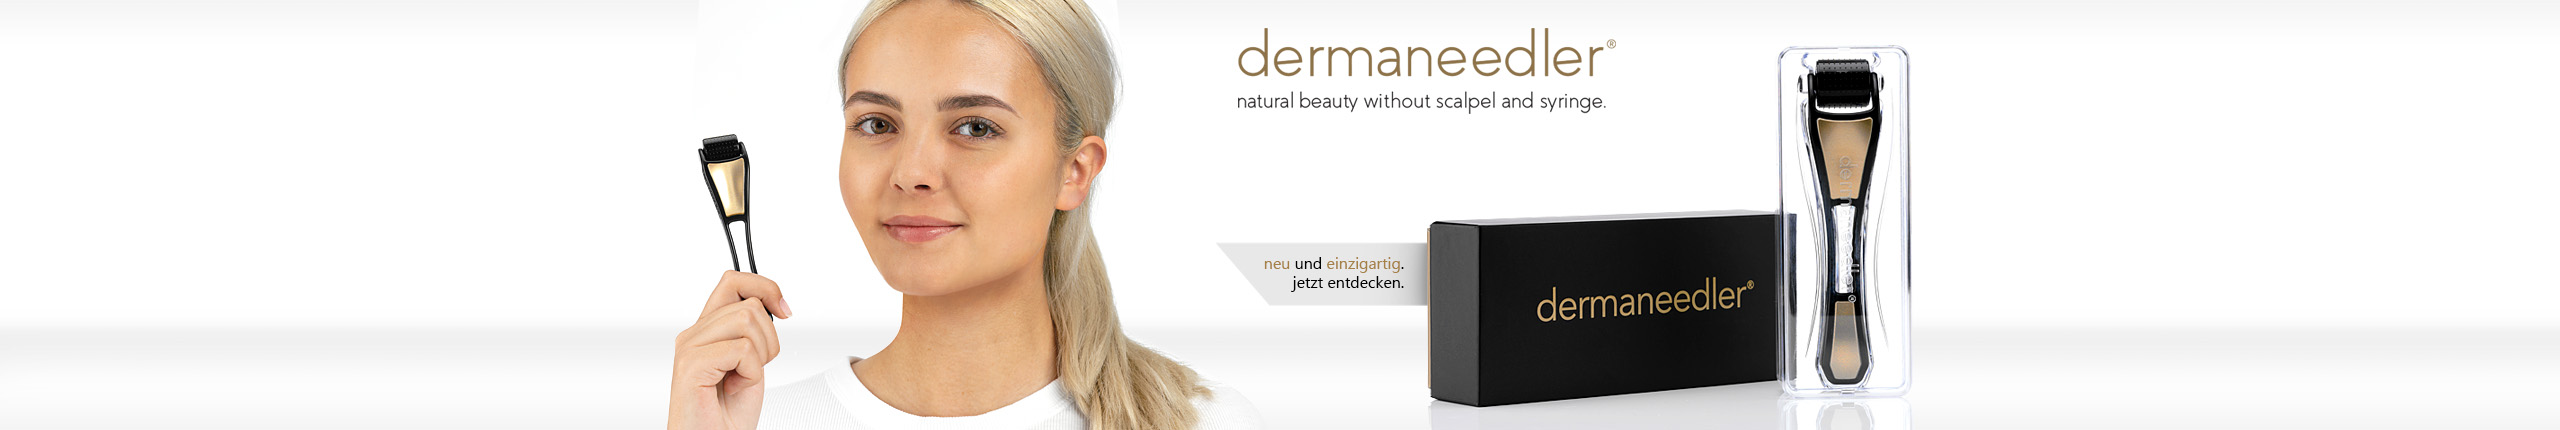 Dermaneedler - natural beauty without scalpel and syringe.